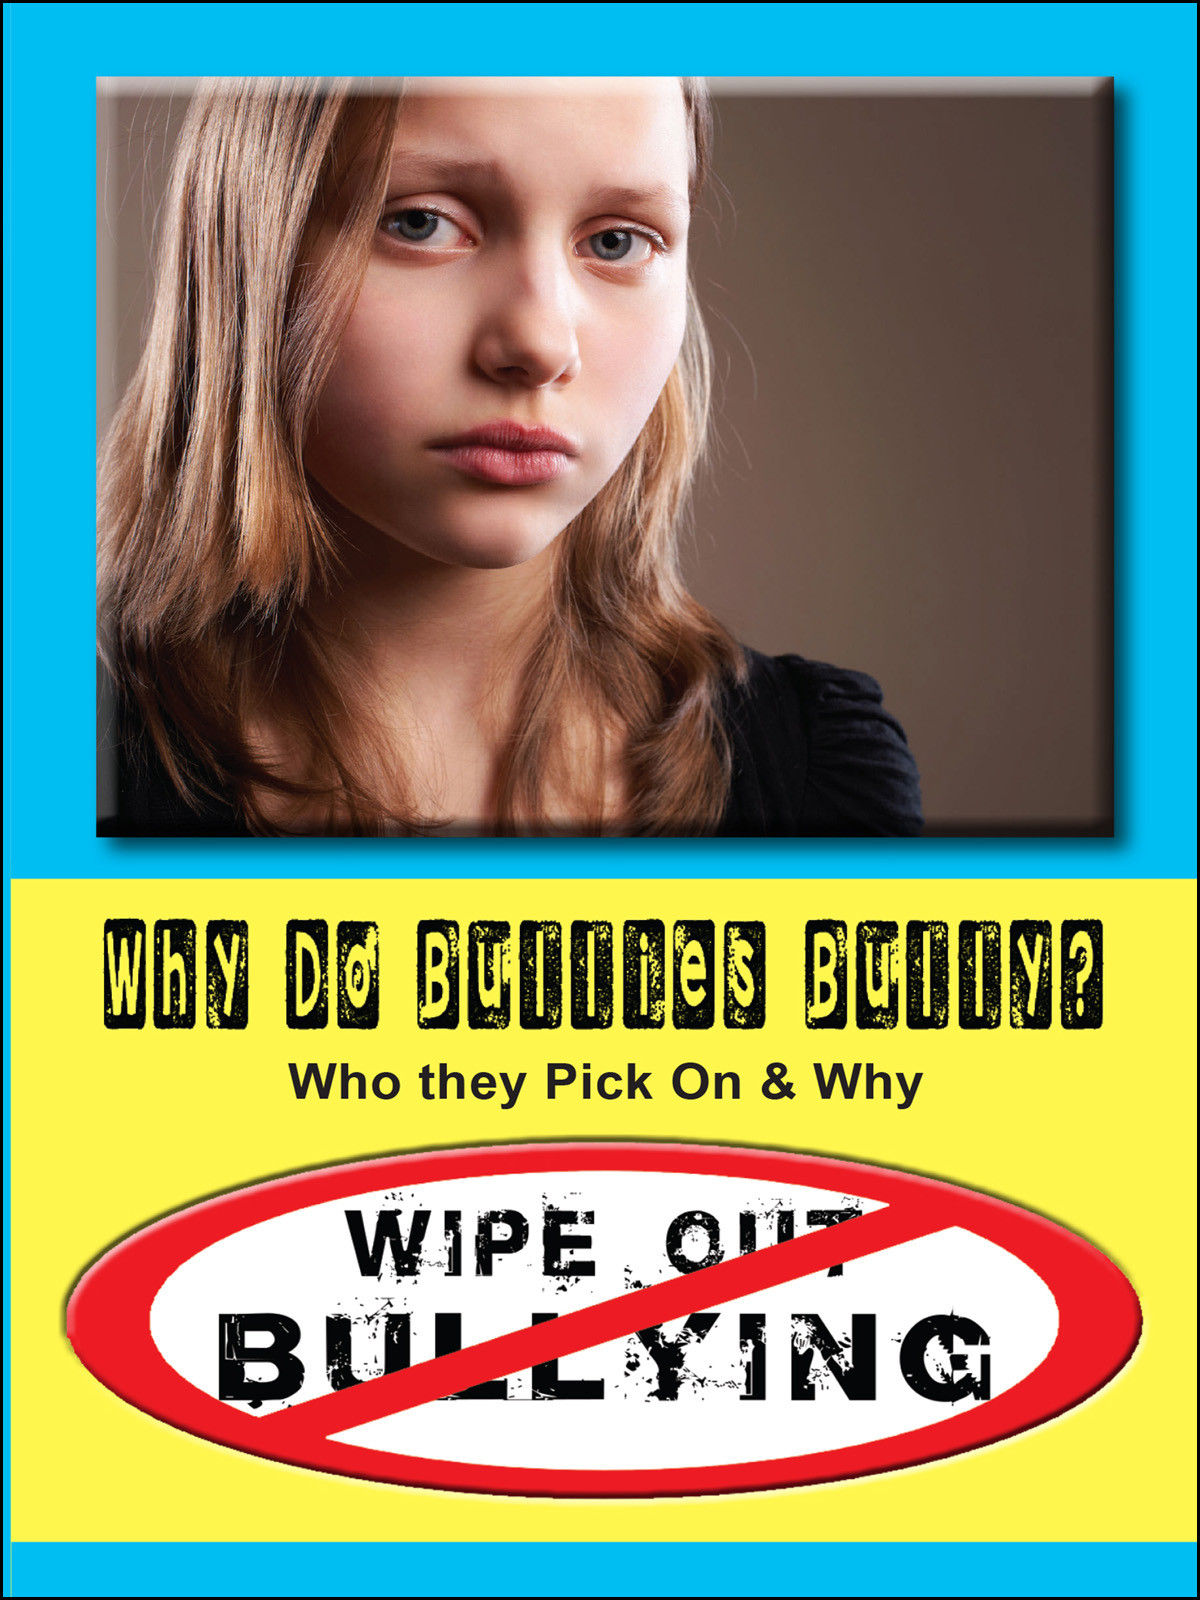 Q511 - Why Do Bullies Bully? Who they Pick On & Why